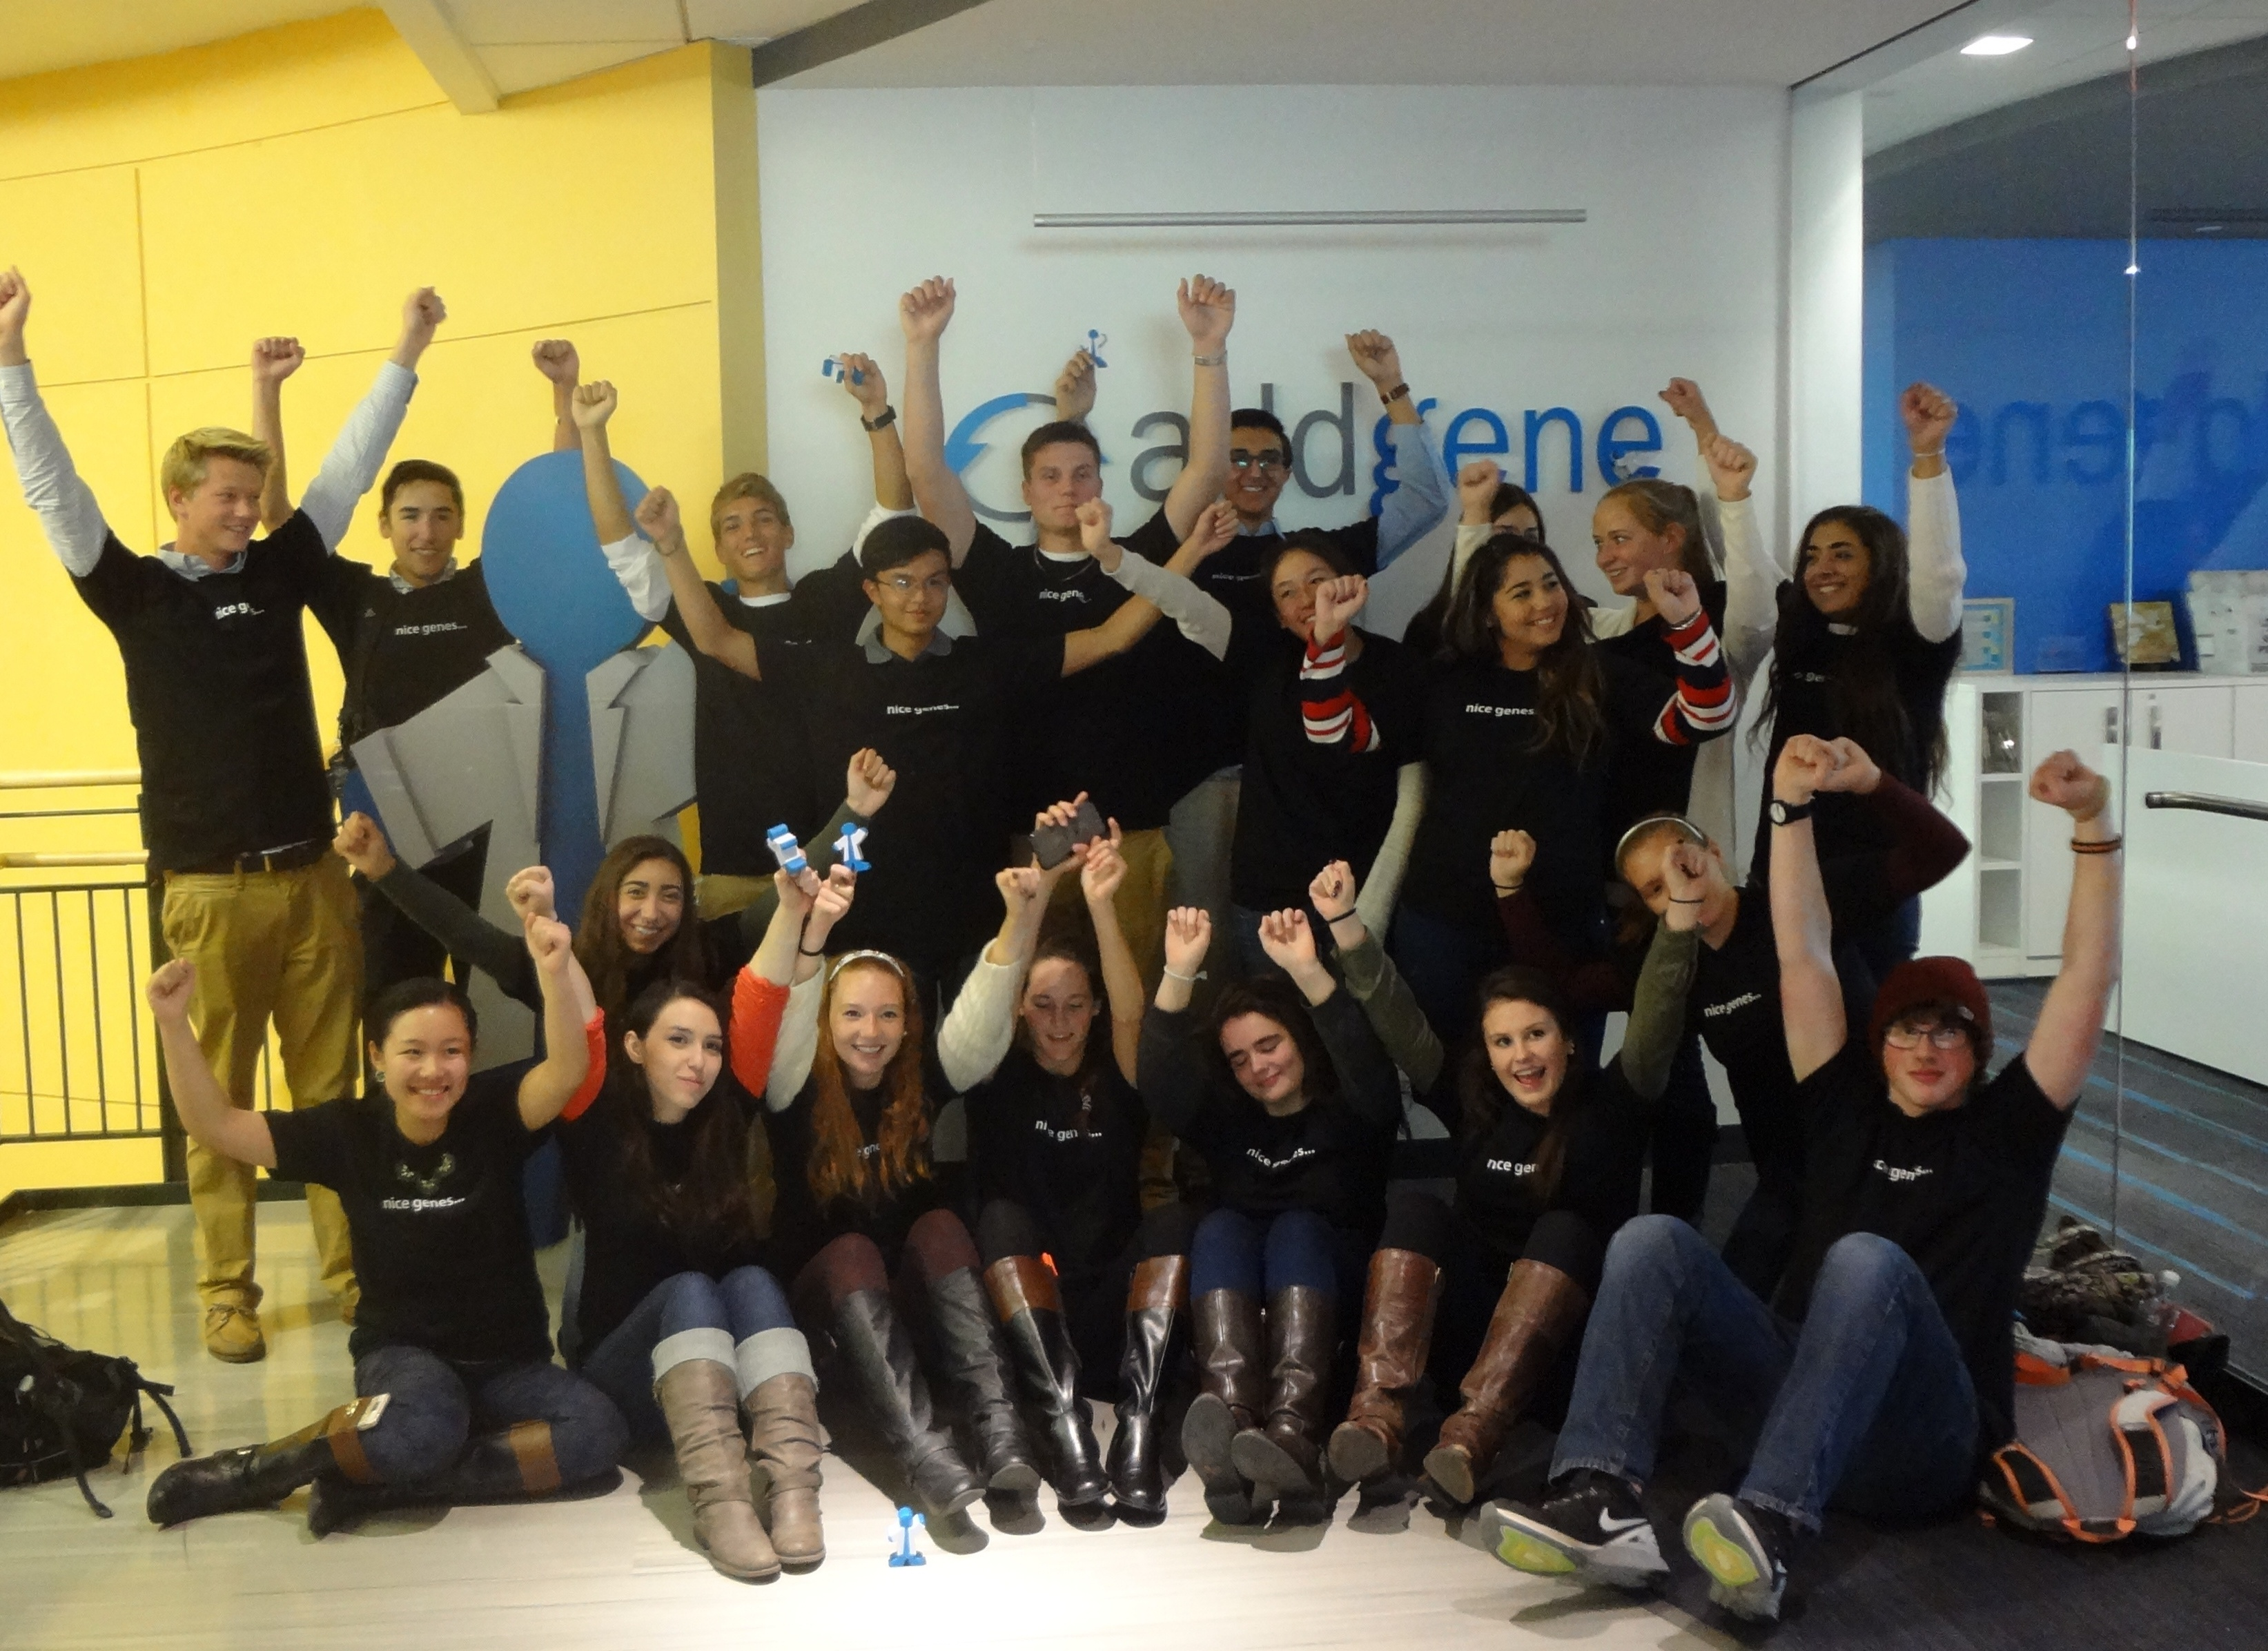 MassBioEd Students posing with Bluegene